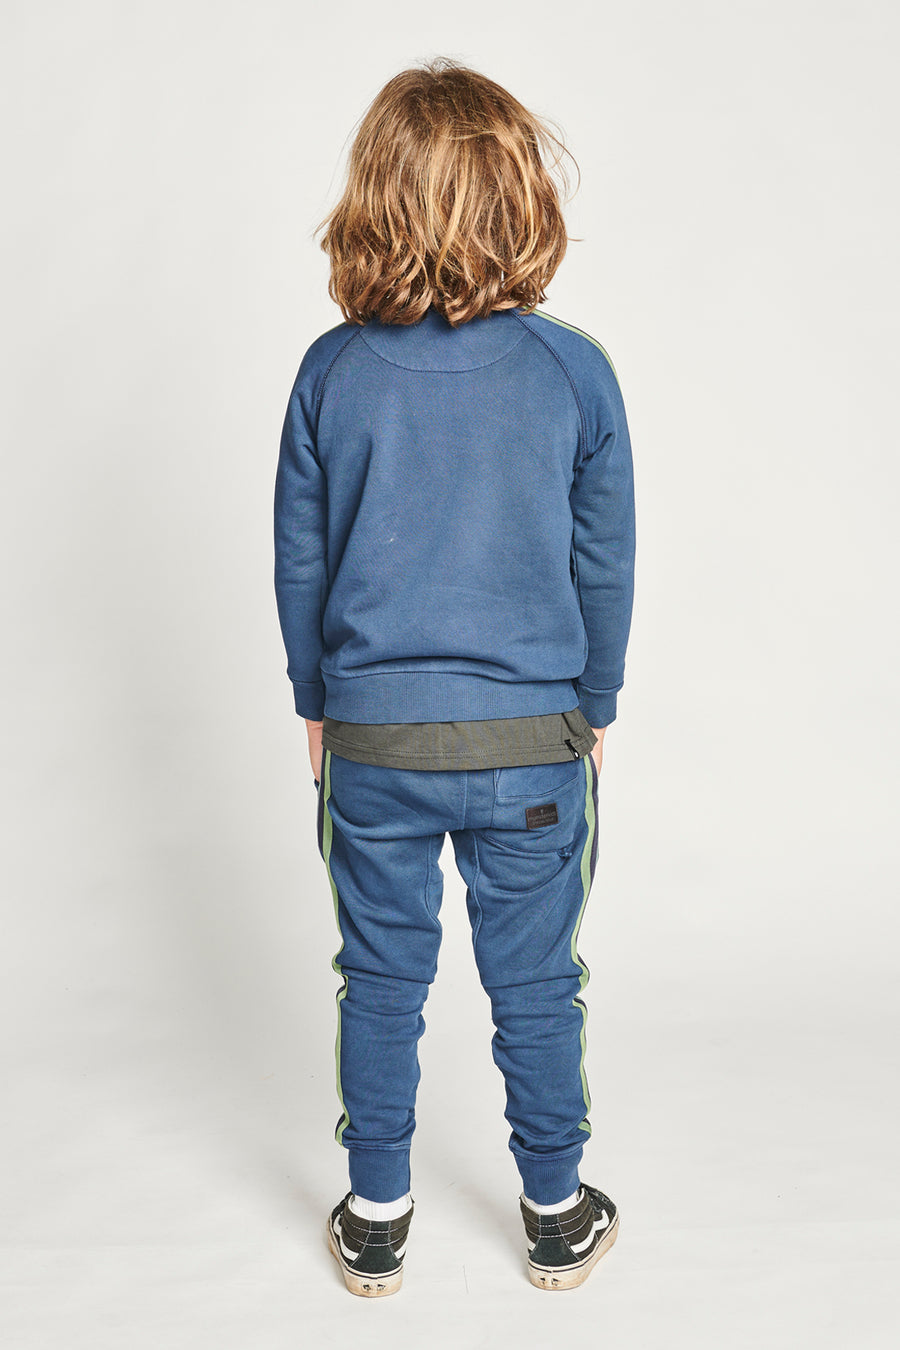 Munster Kids Racer Boys Pants